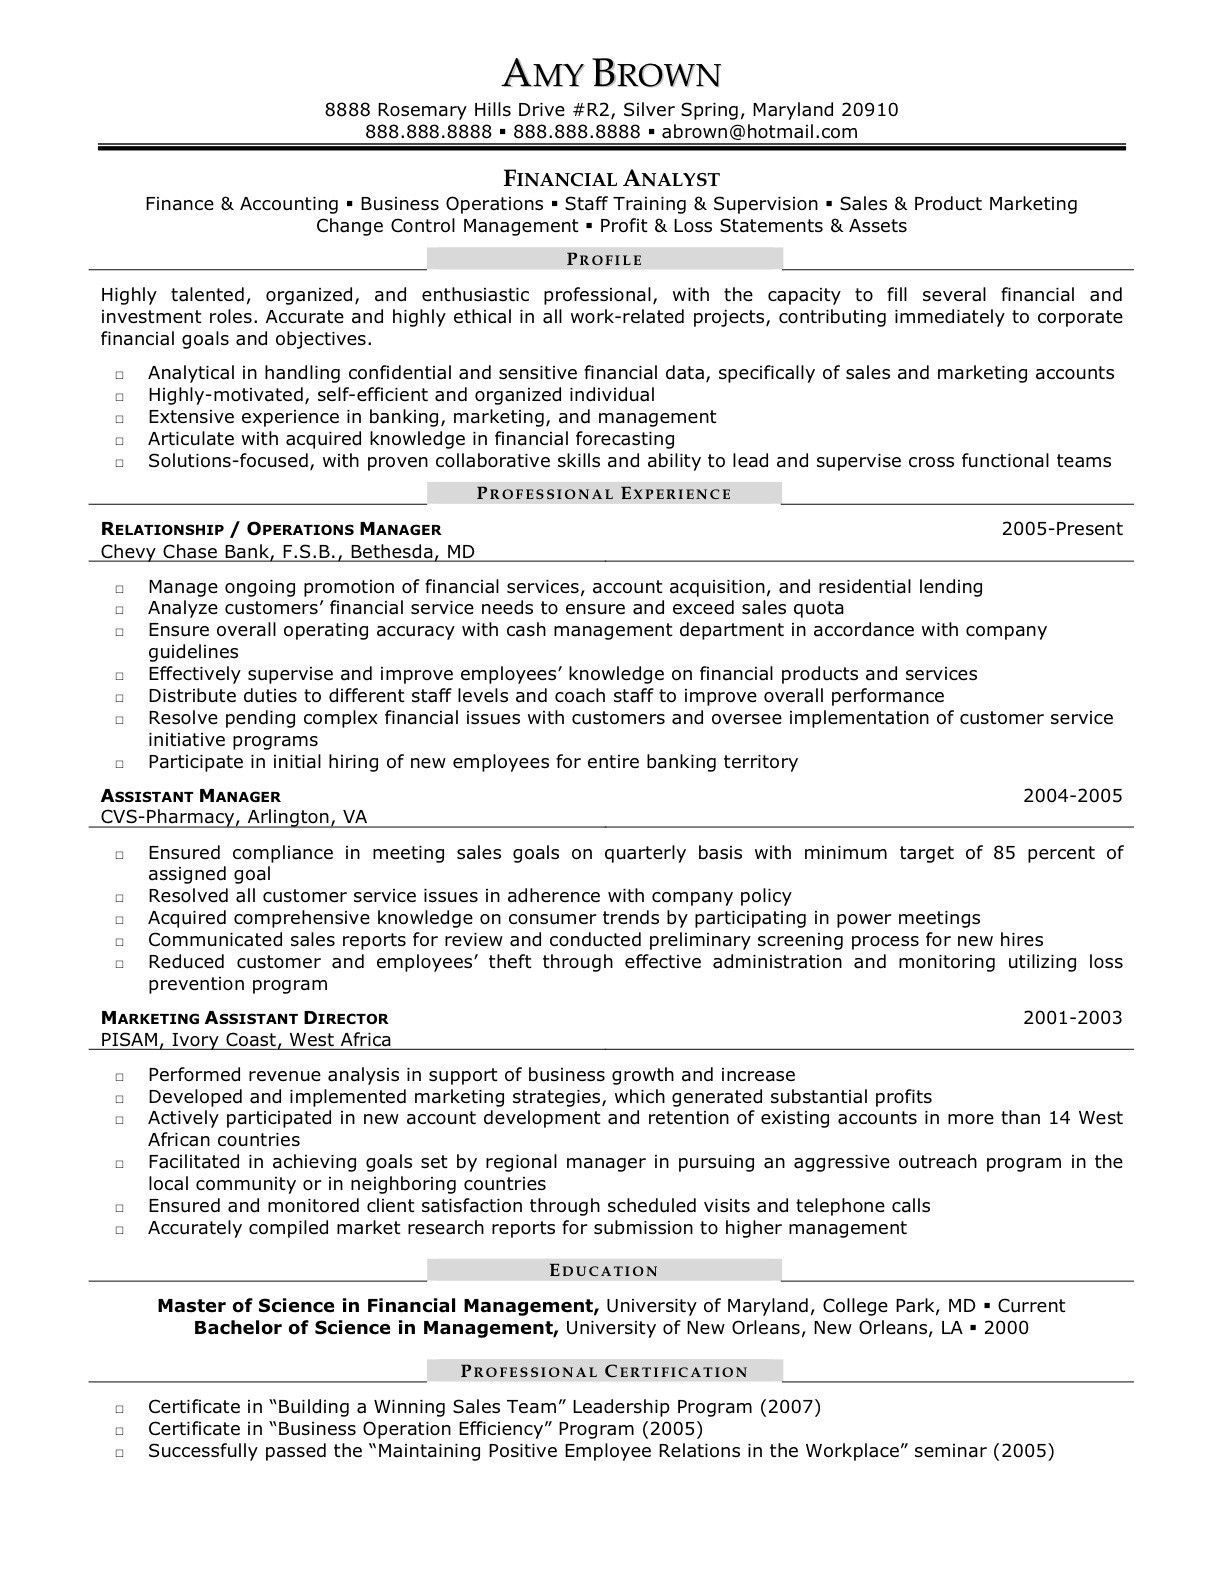 Business Analyst Resume Examples - Senior Financial Analyst Resume Sample Best Lovely Consulting Resume